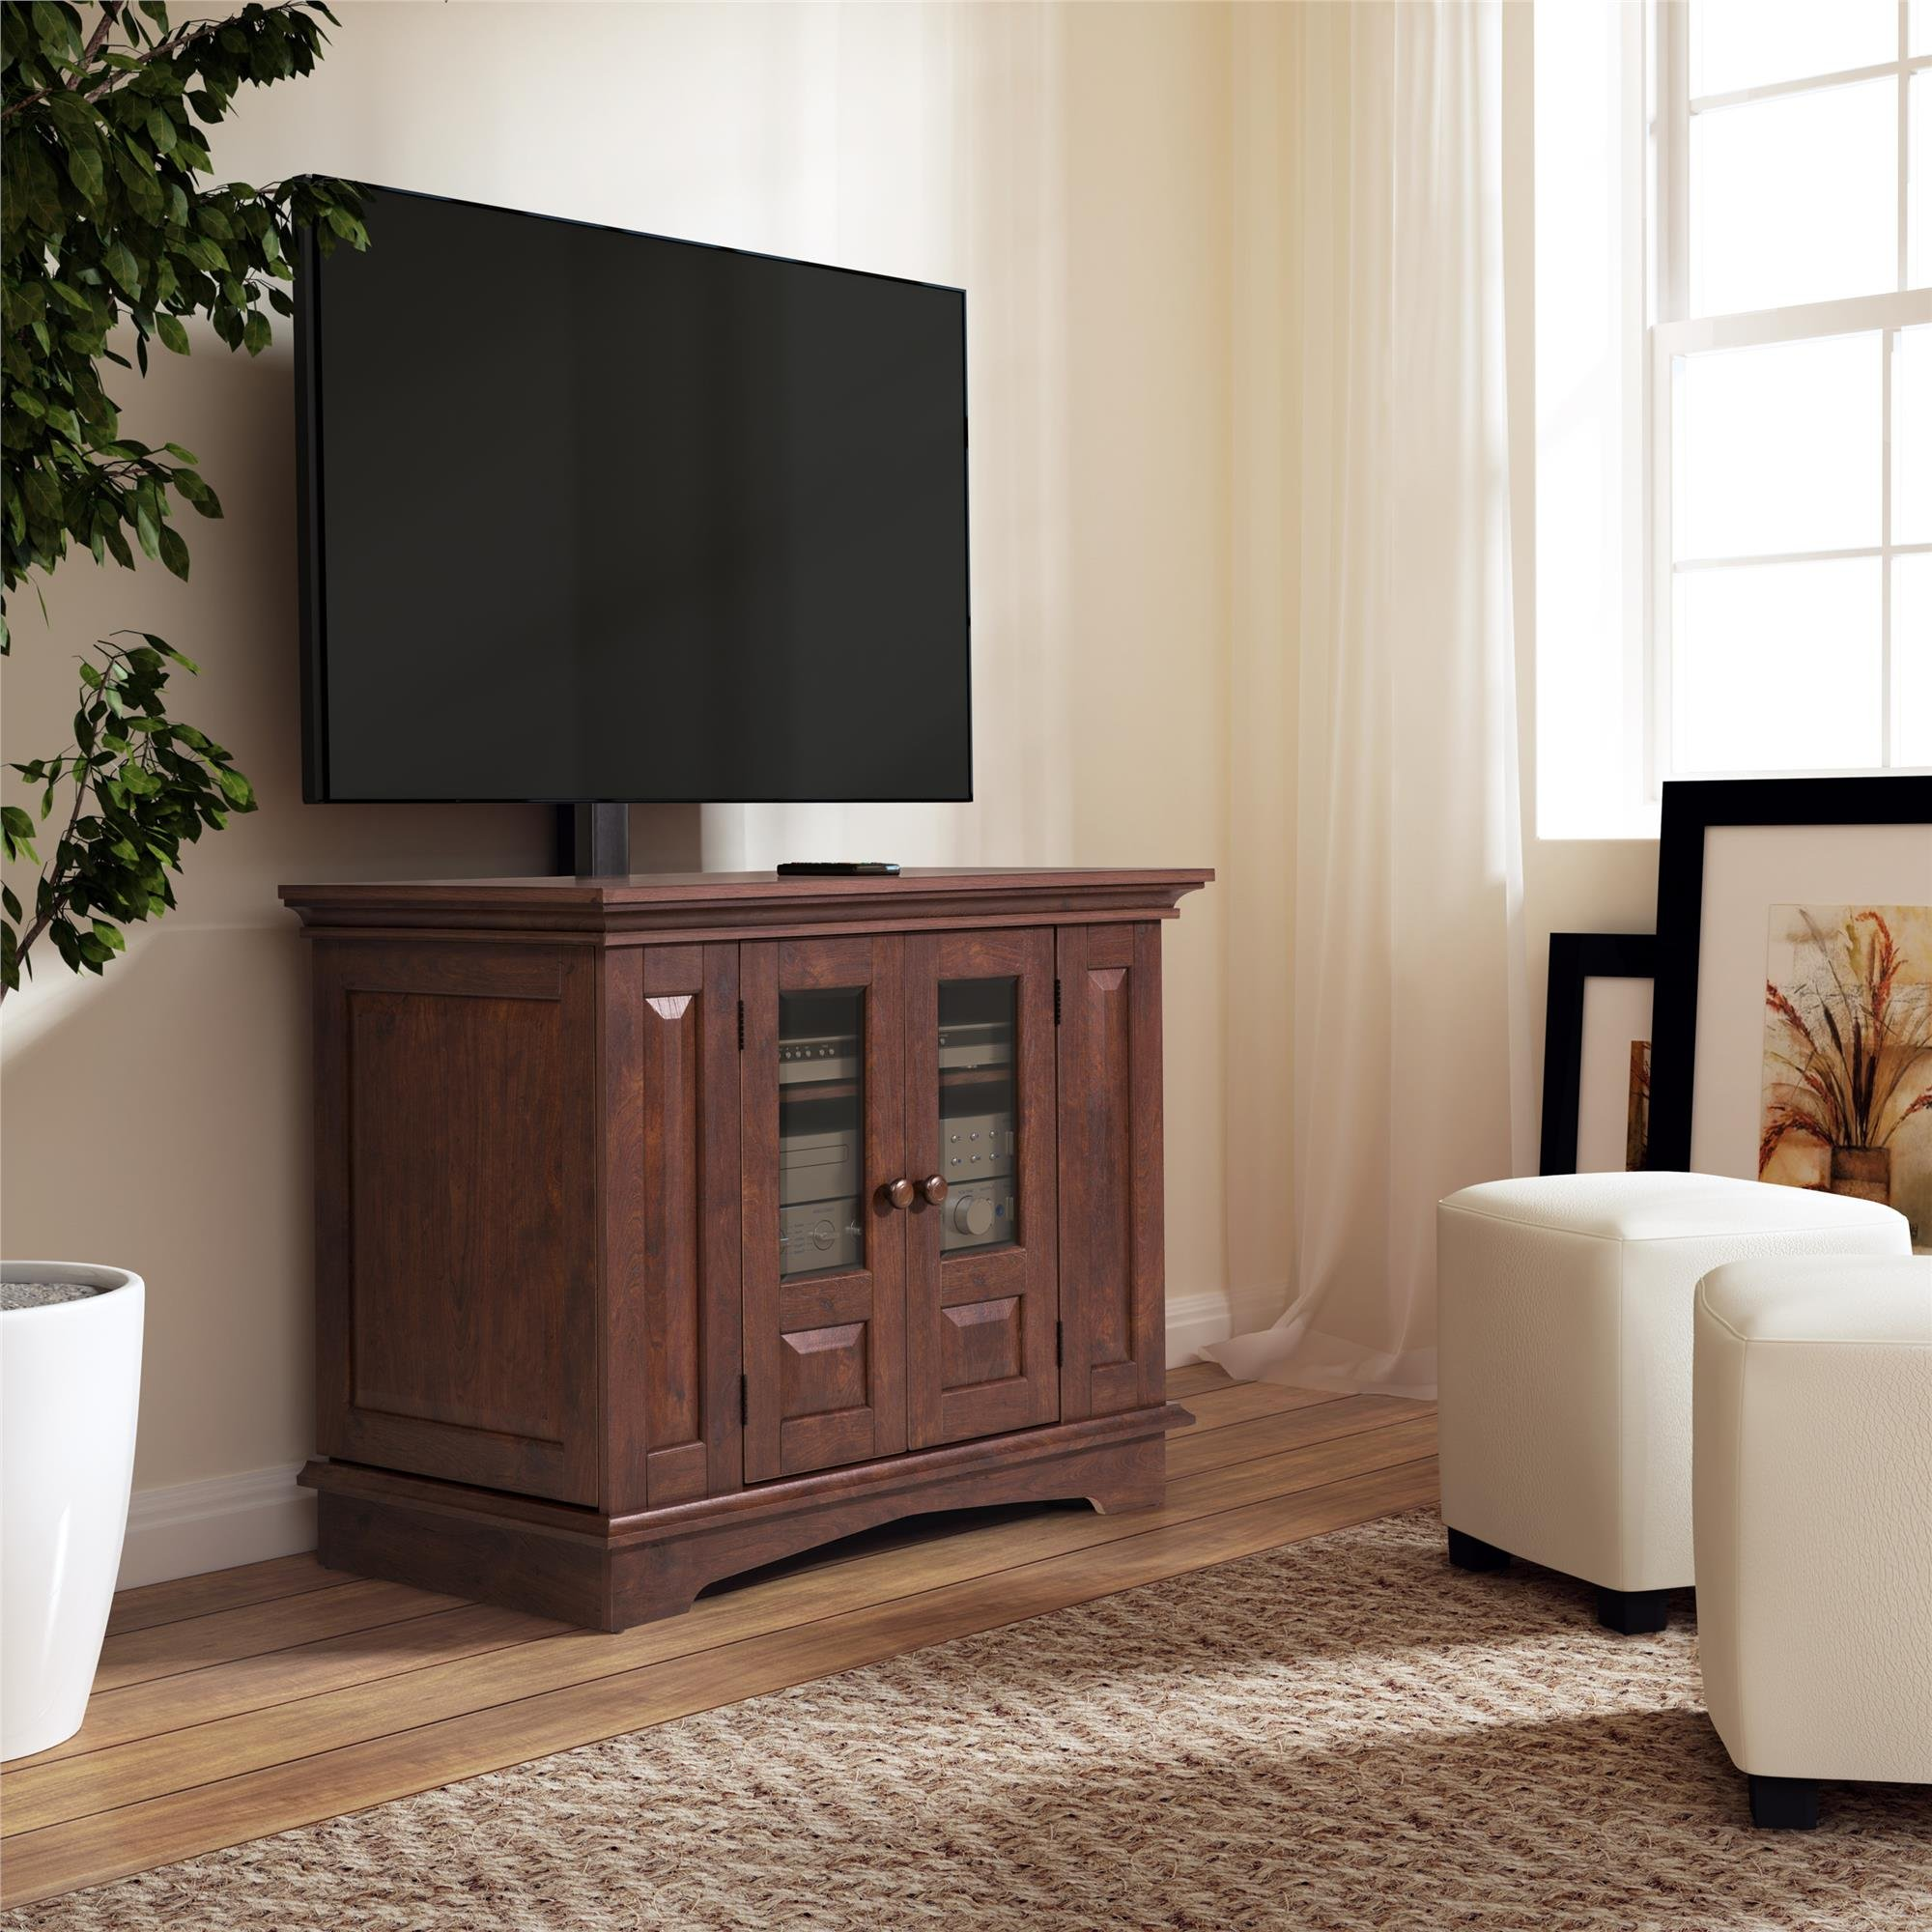 Altra Furniture 37'' TV Stand with Mount, Coach Cherry